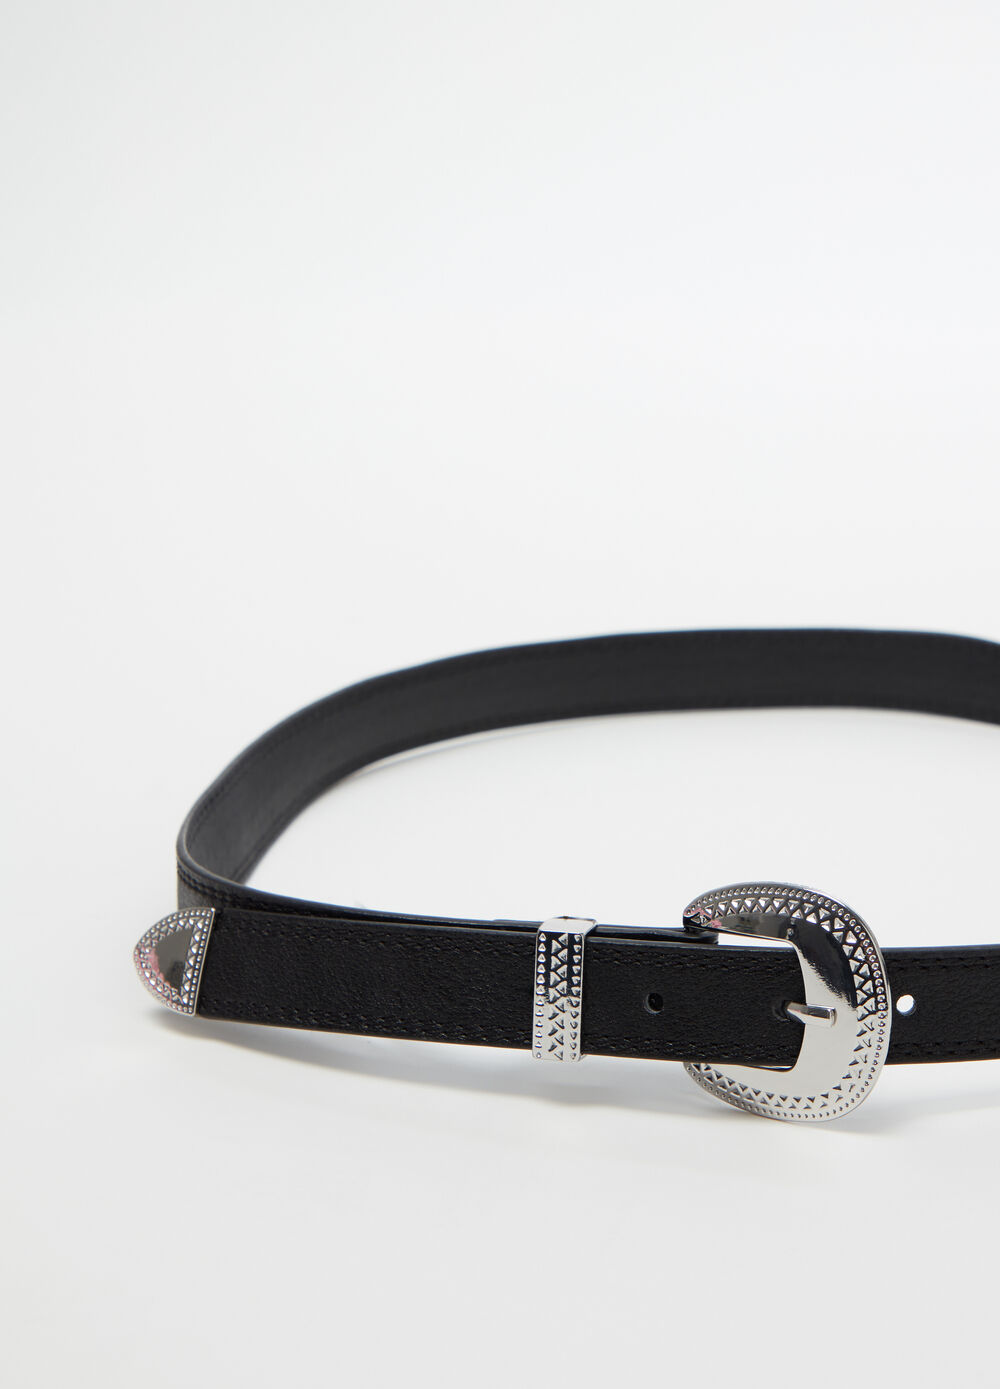 Western-style belt with silver buckle